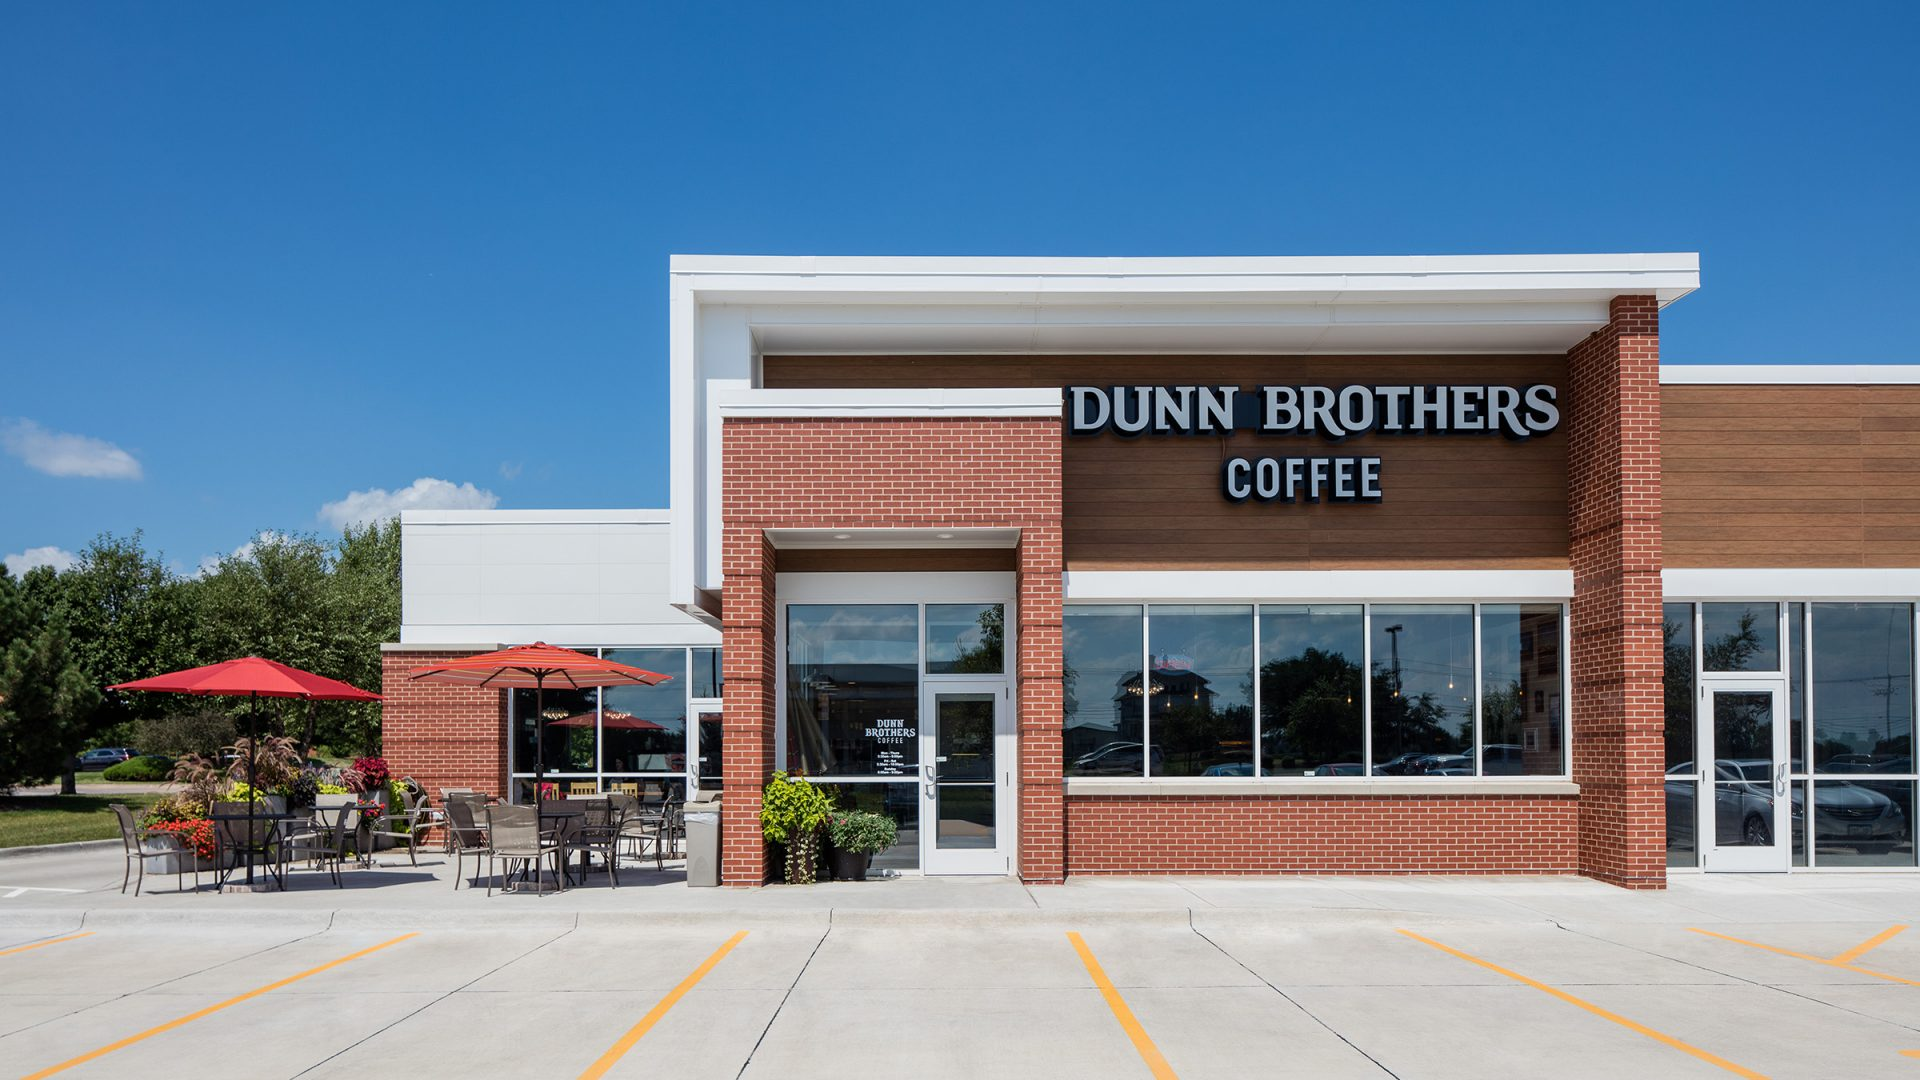 brick exterior of Dunn Brothers